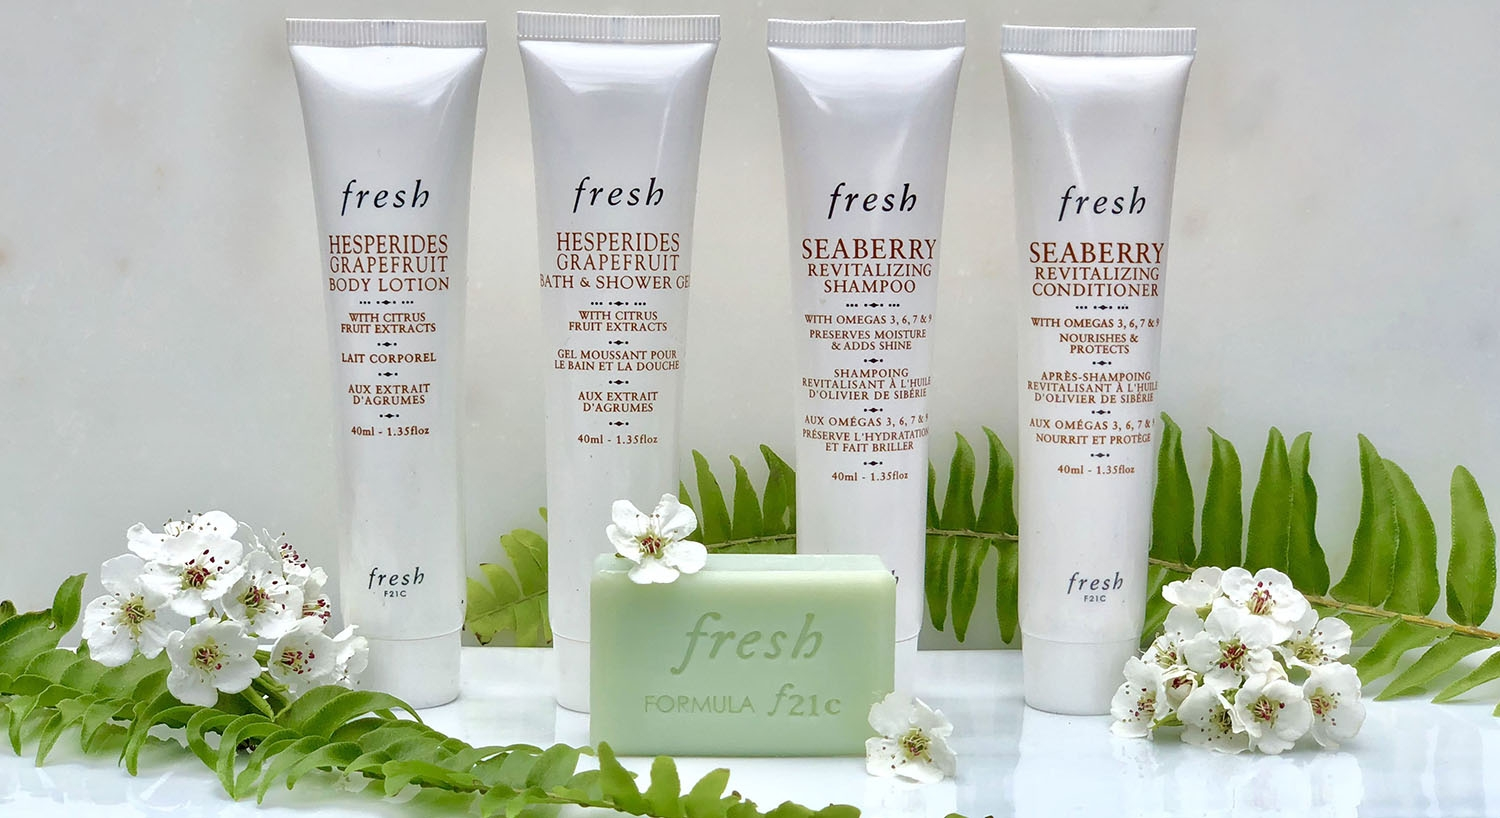 Four white bottles of Fresh brand bathroom amenities, with green bar of soap, green fern fronds and white pear blossoms.